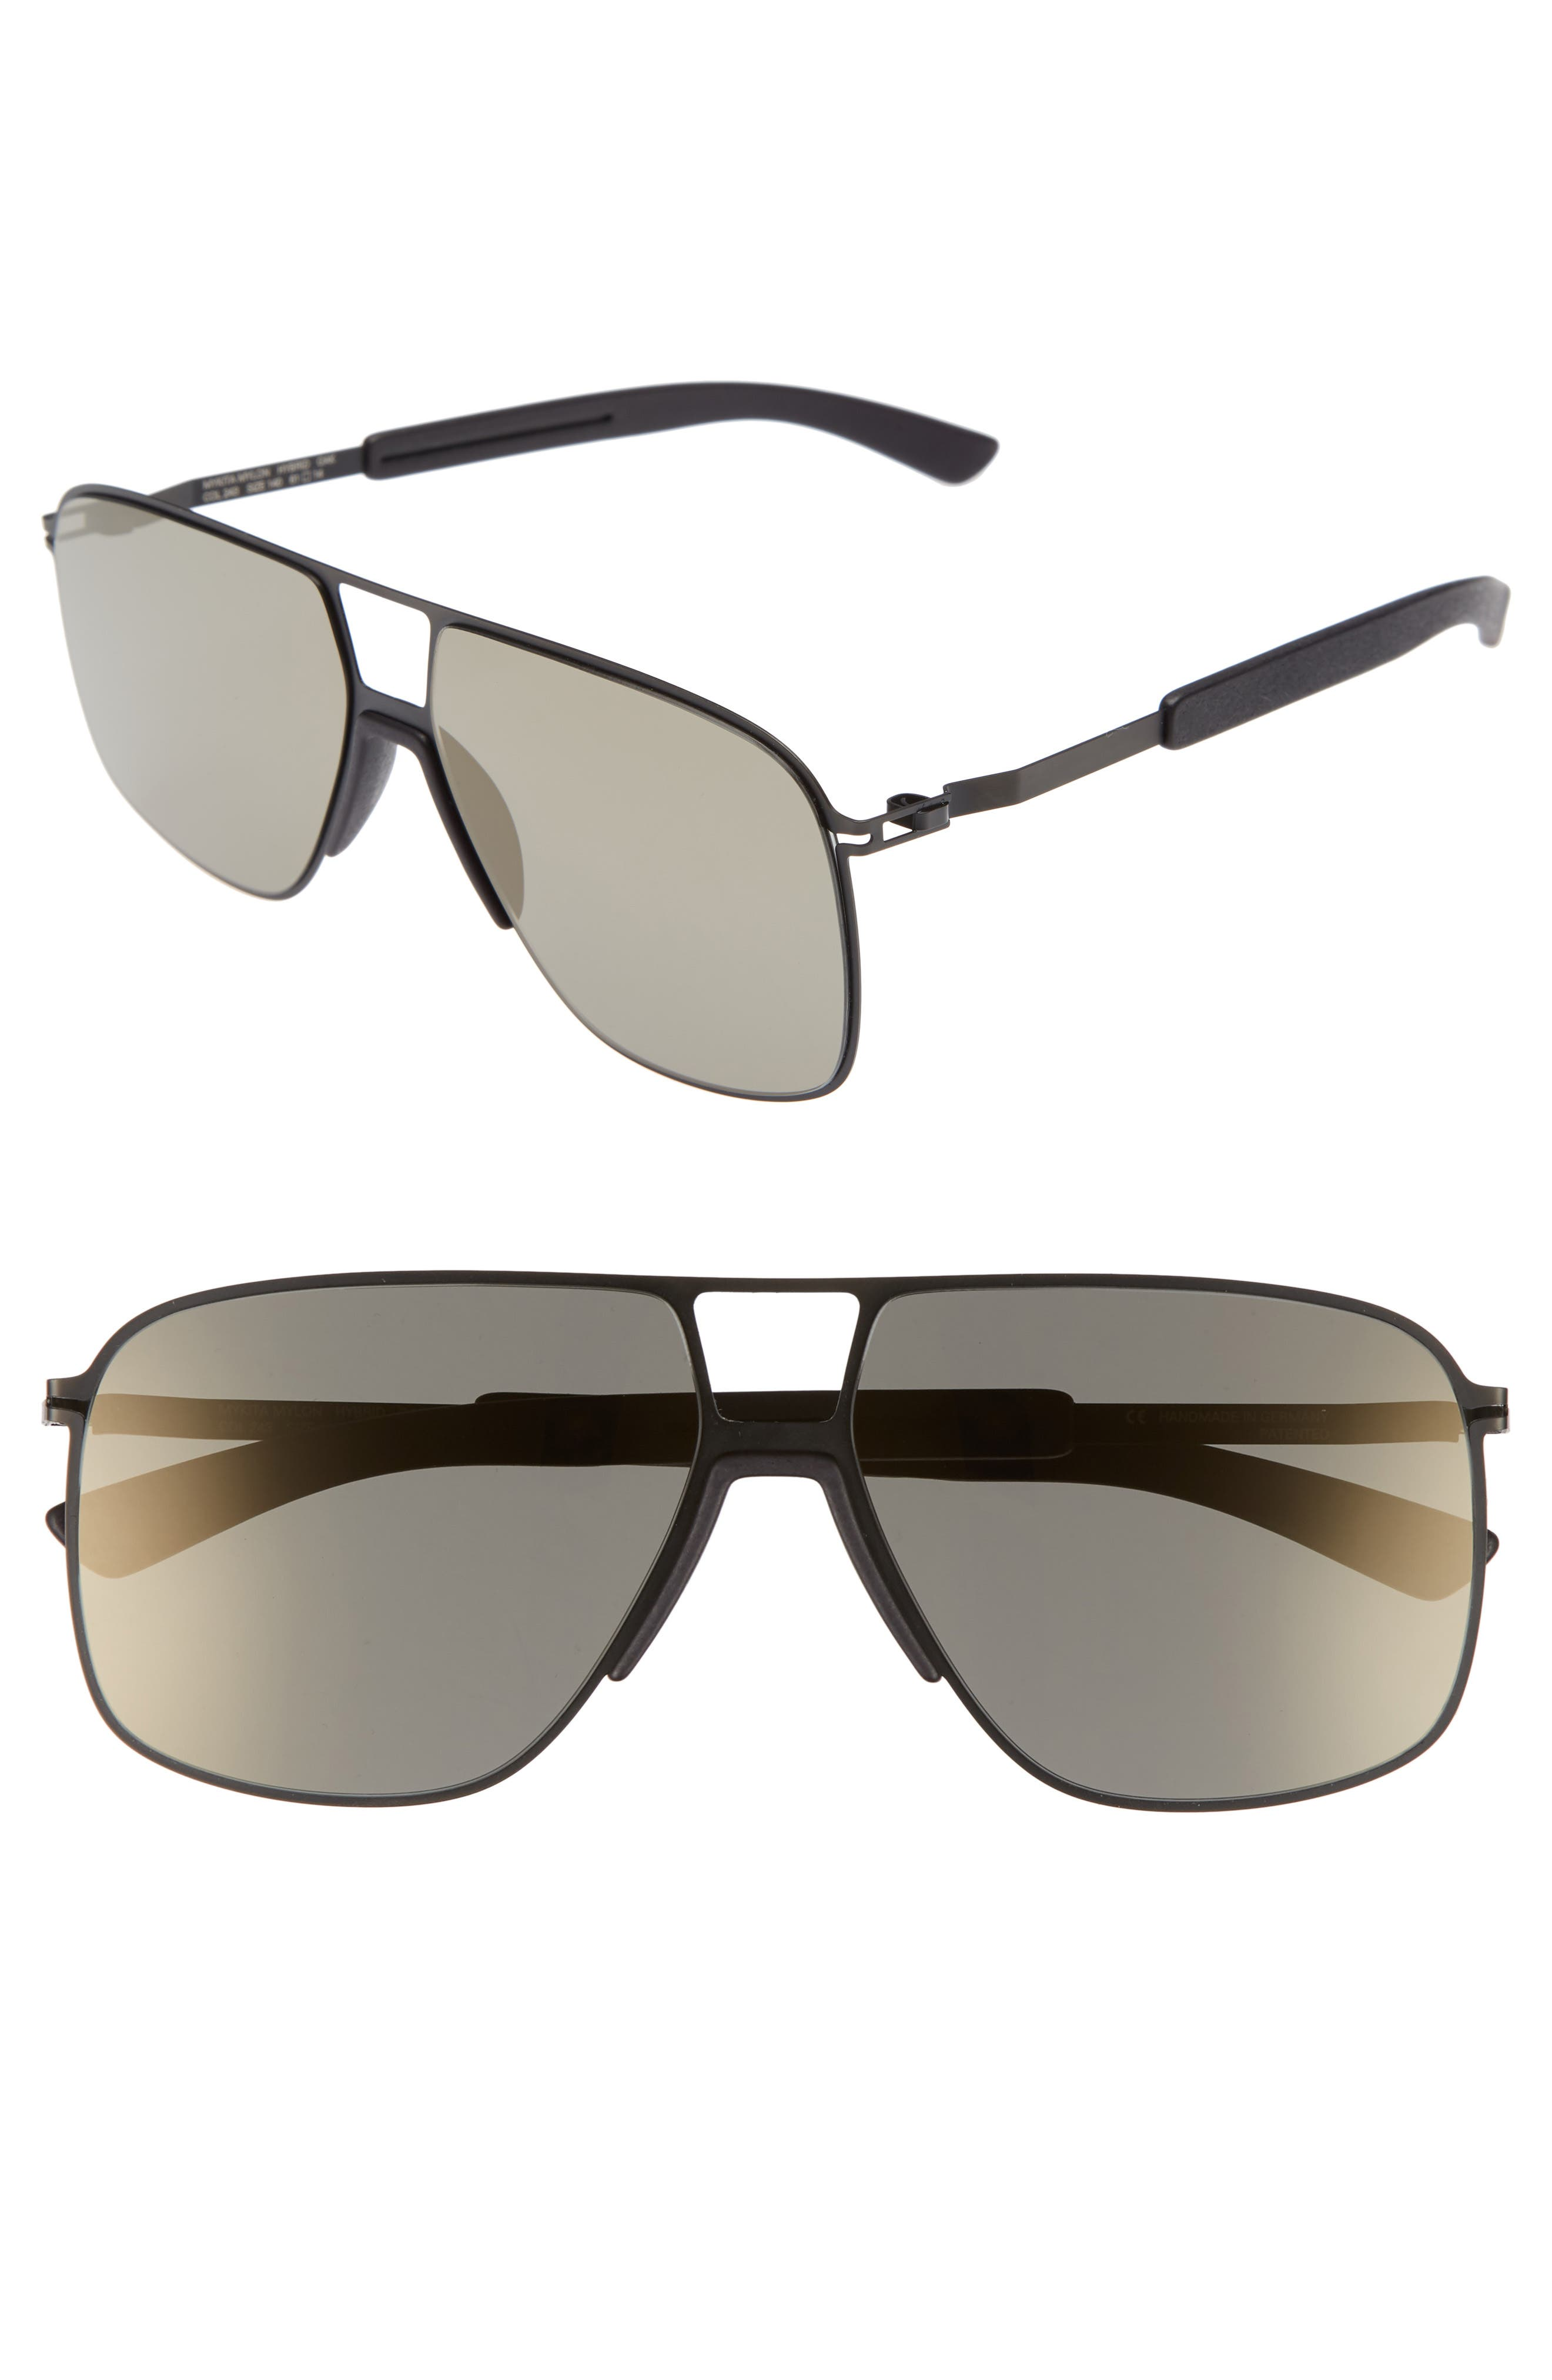 Oak 61mm Aviator Sunglasses,                             Main thumbnail 1, color,                             Black/ Pitch Black